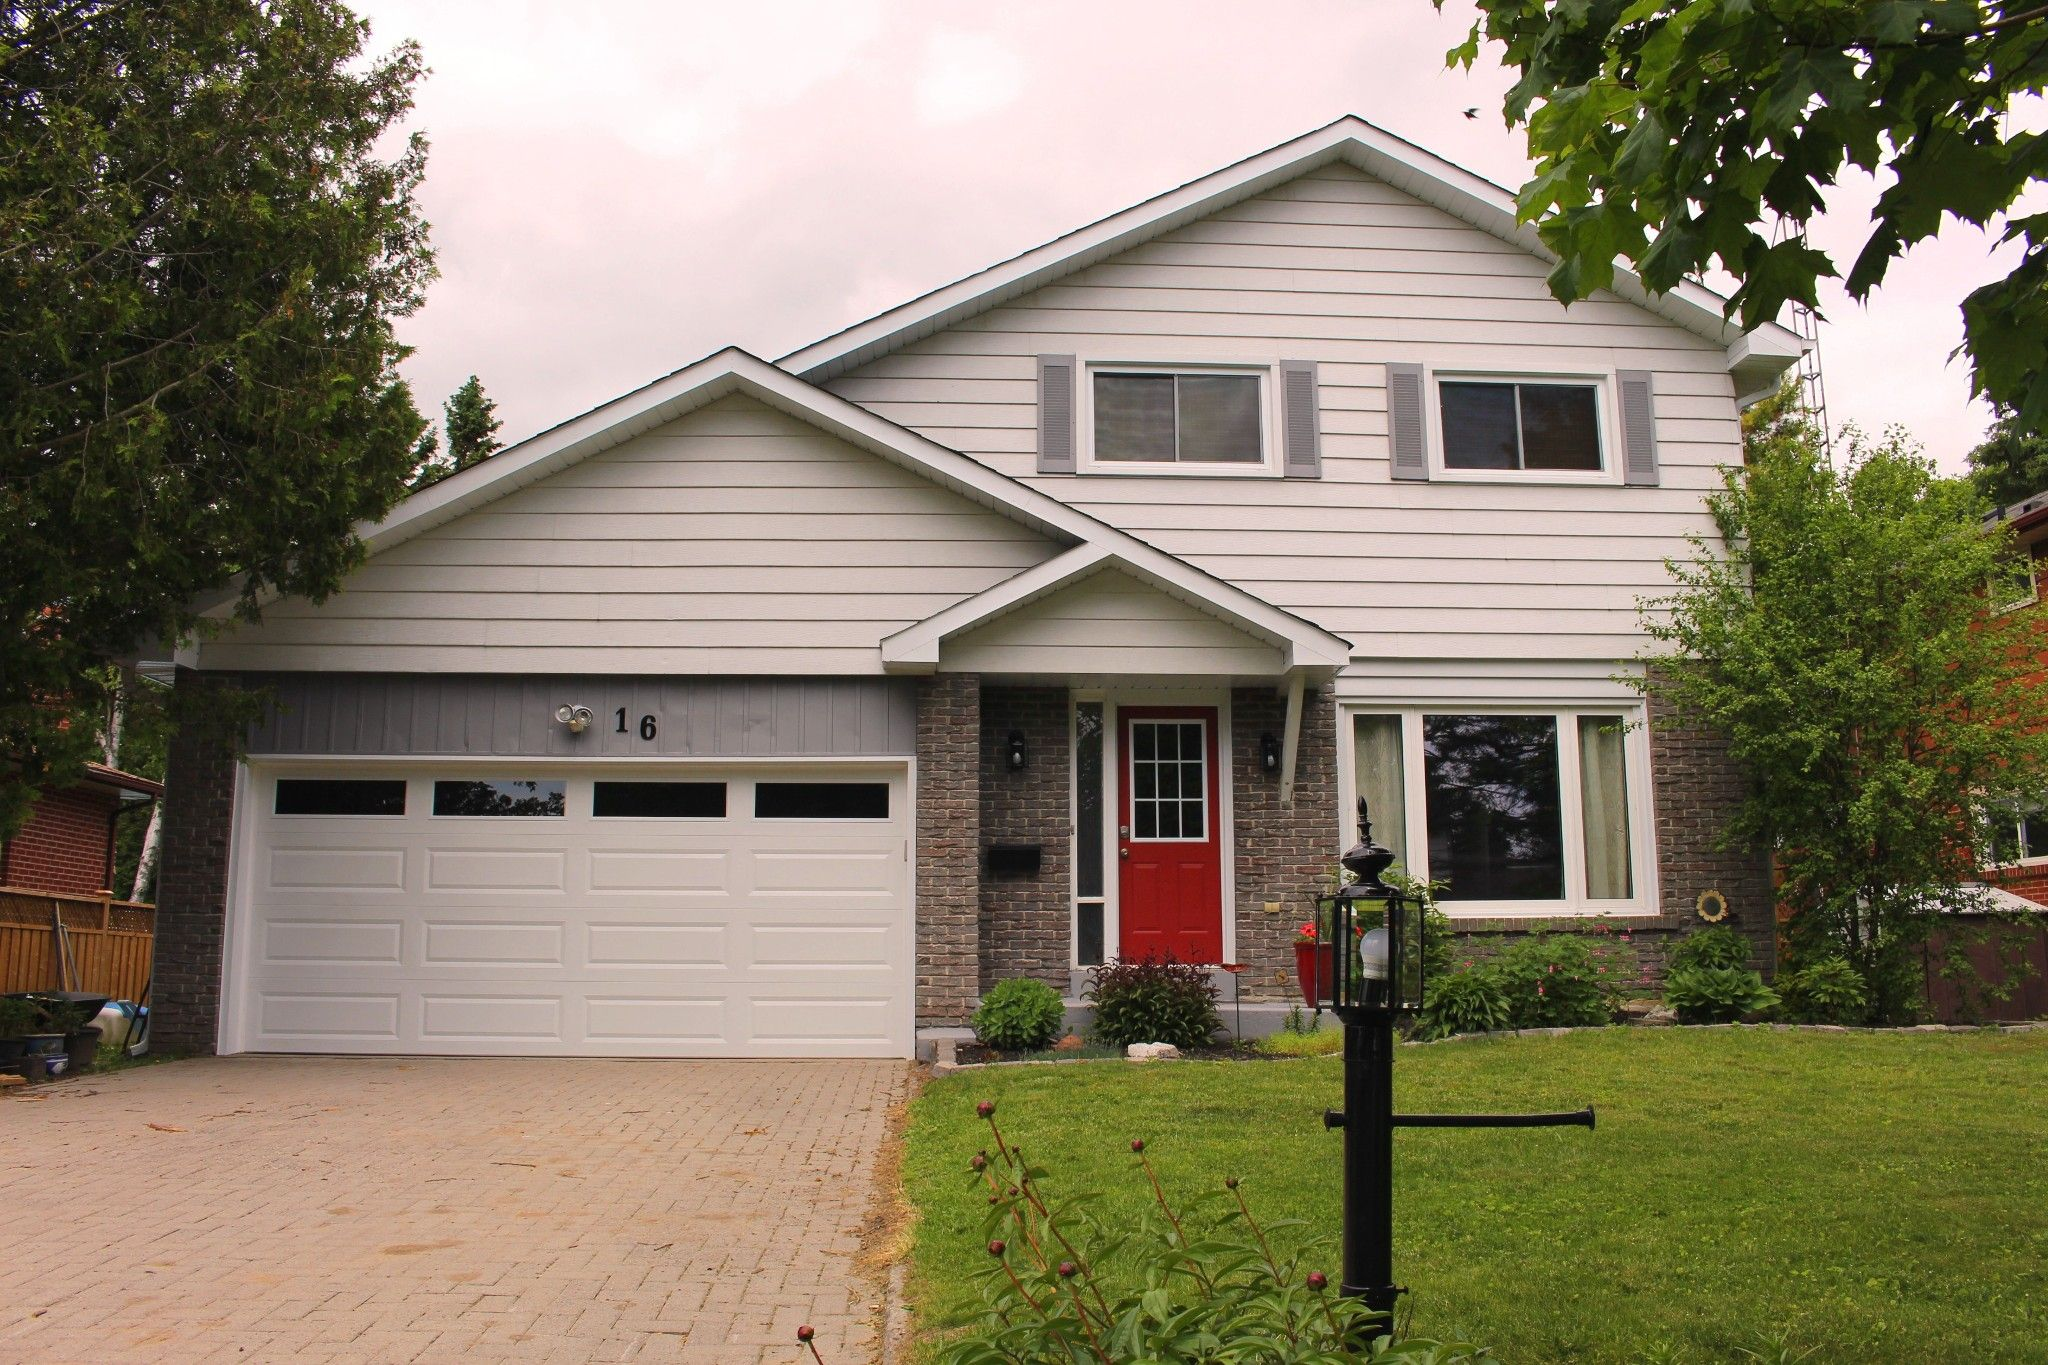 Main Photo: 16 Ravensdale Road in Cobourg: House for sale : MLS®# 132729